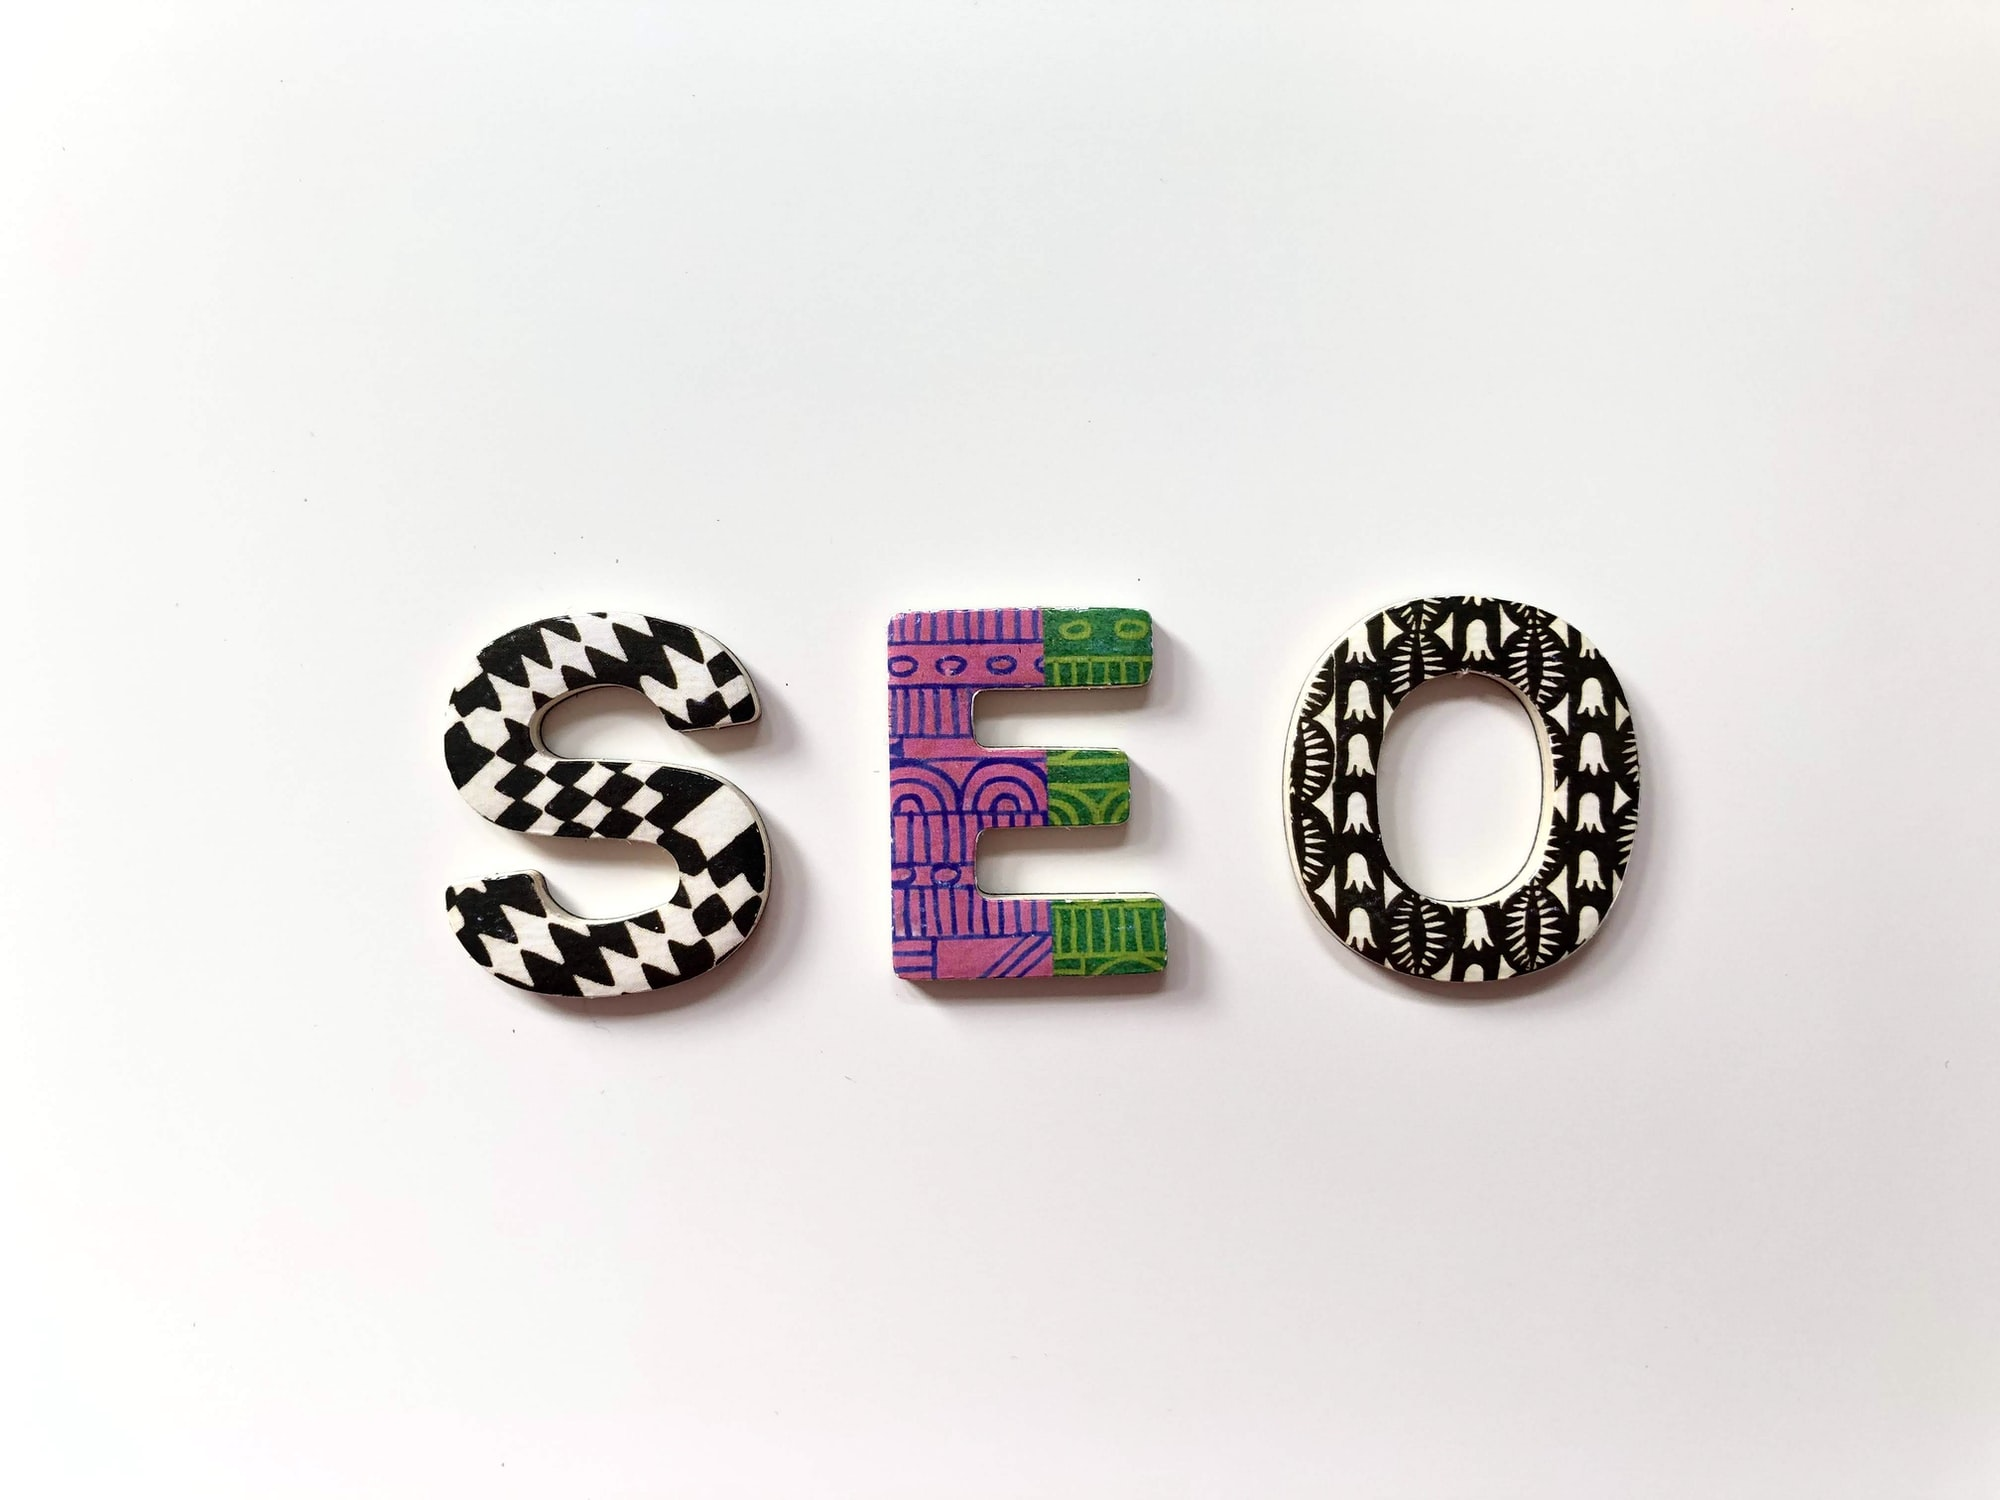 7 Most Ethical Ways To Improve Your SEO